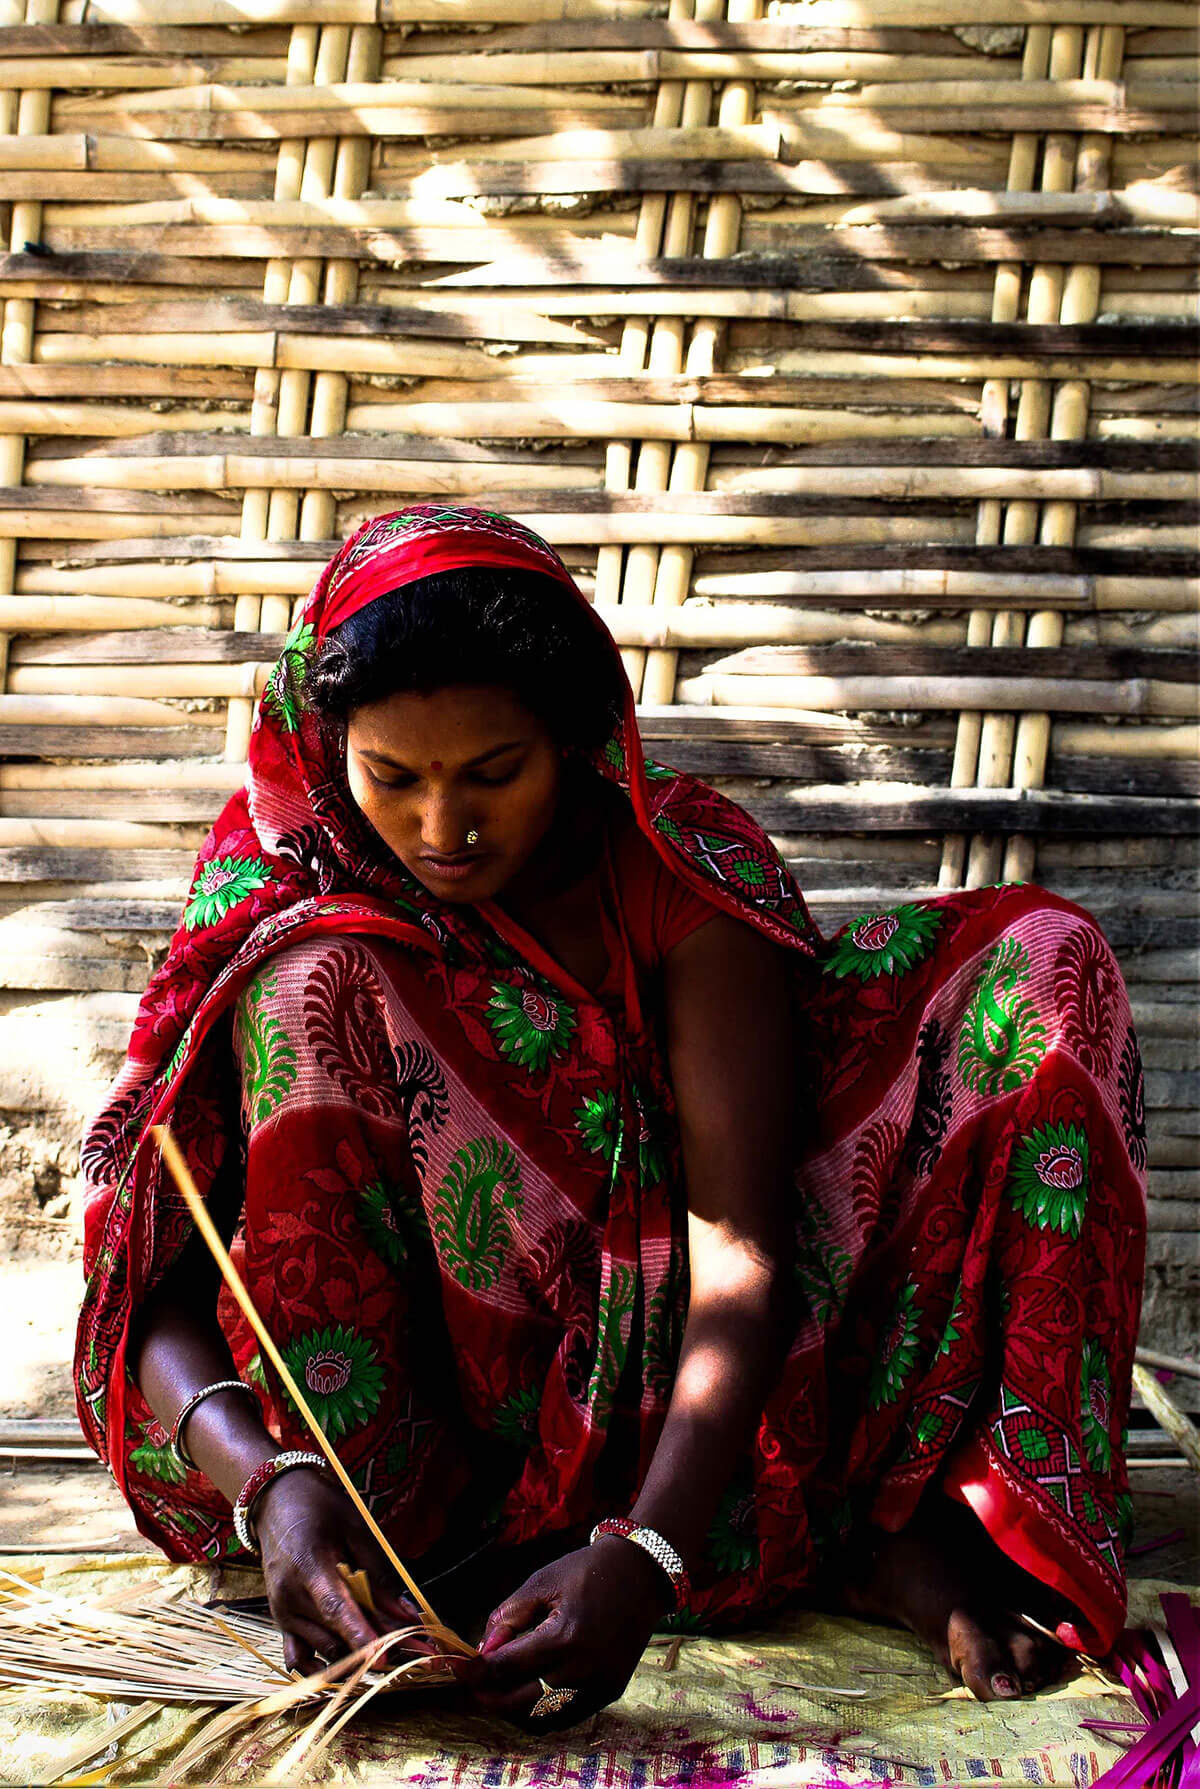 Babita Marik making fan or bena out of bamboo shoots. This is their traditional occupation which is slowly dying out. She only makes them when she gets orders, that is only during wedding seasons. She gets Rs 1000 per order. On other times, she stays home looking after her children. Mariks are of Dom caste, much lower than Dalits in the caste hierarchy.